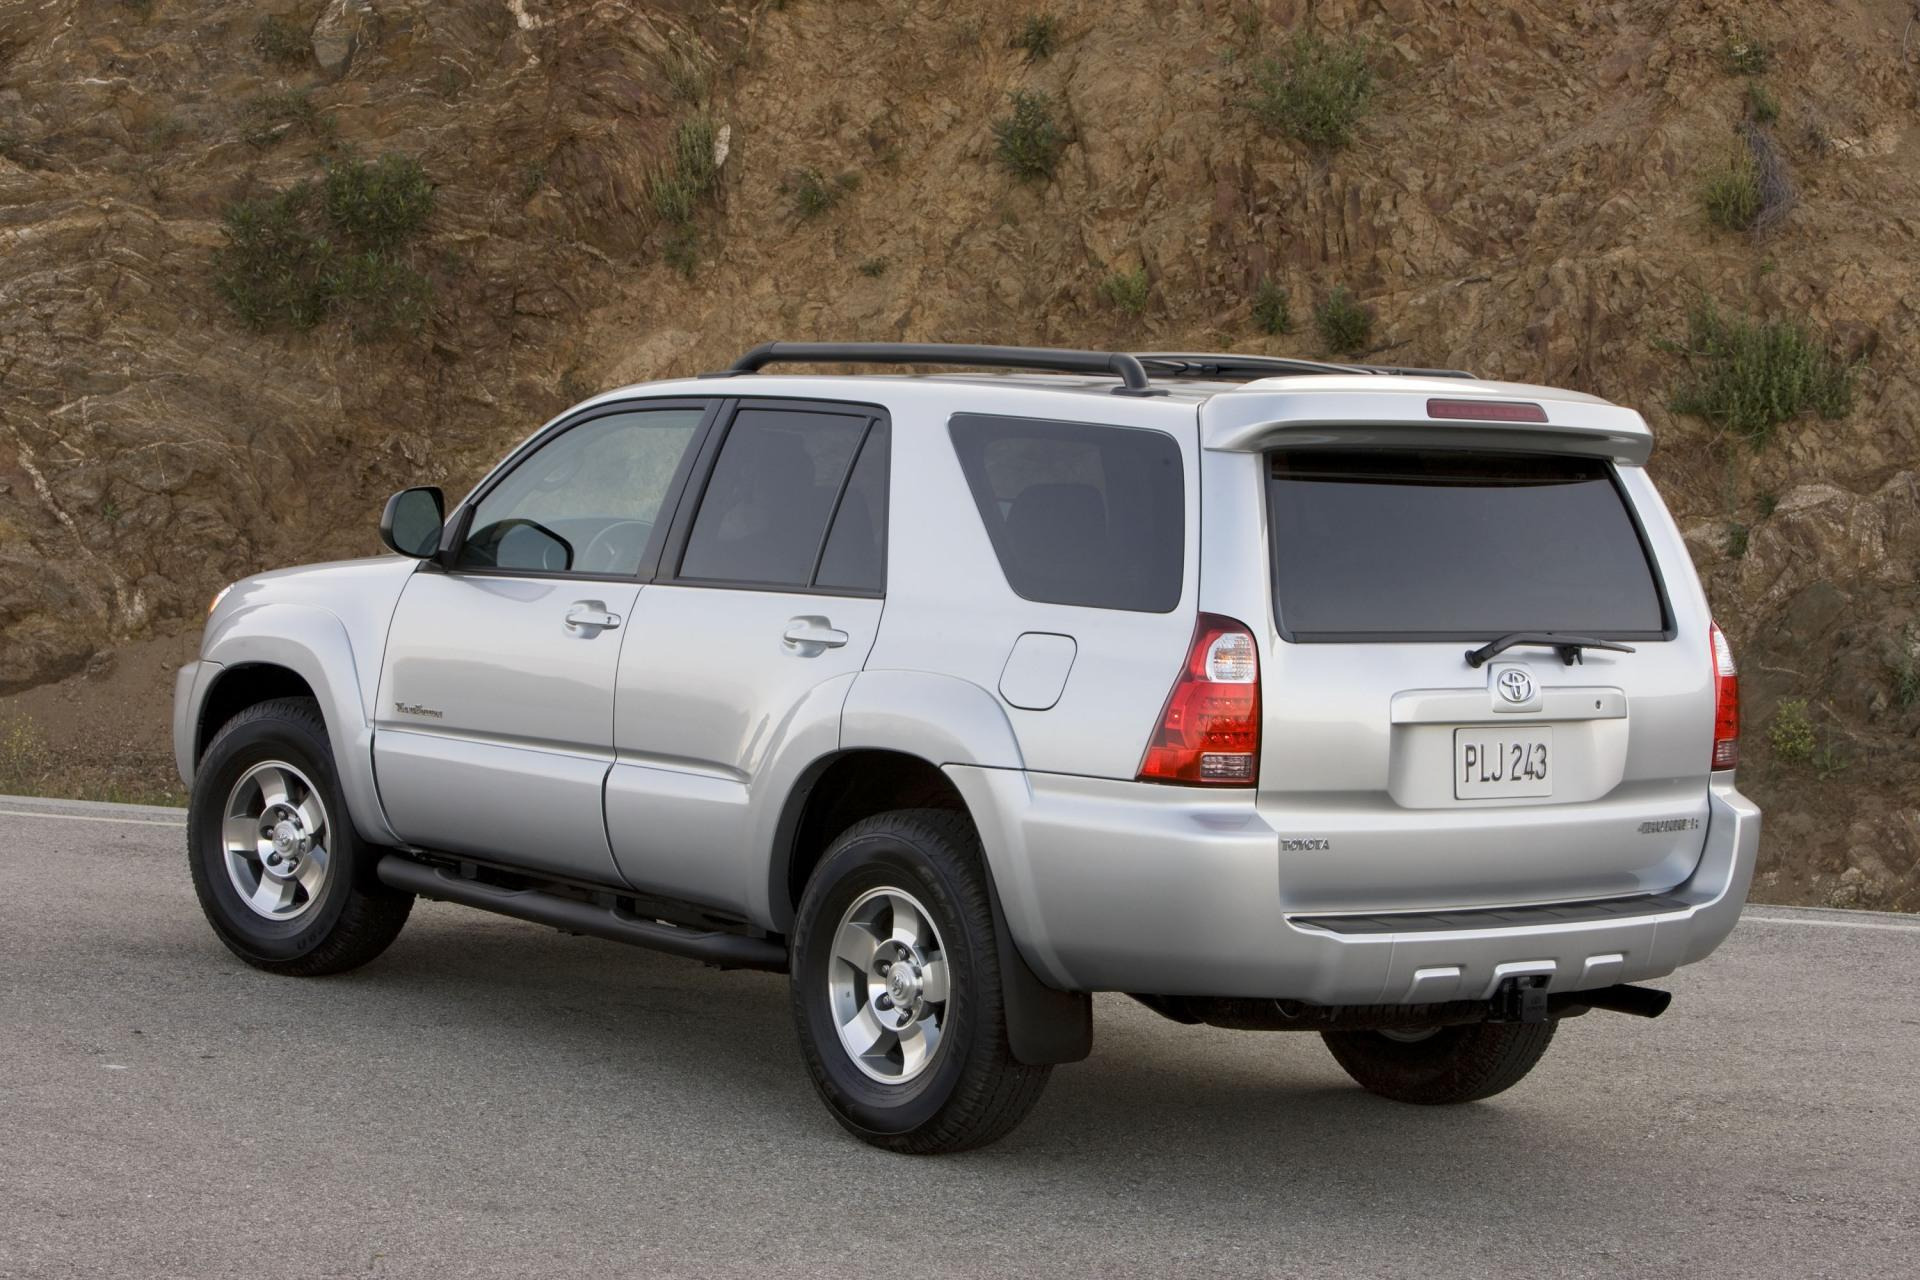 2006 Toyota 4Runner Image. Photo 48 of 87